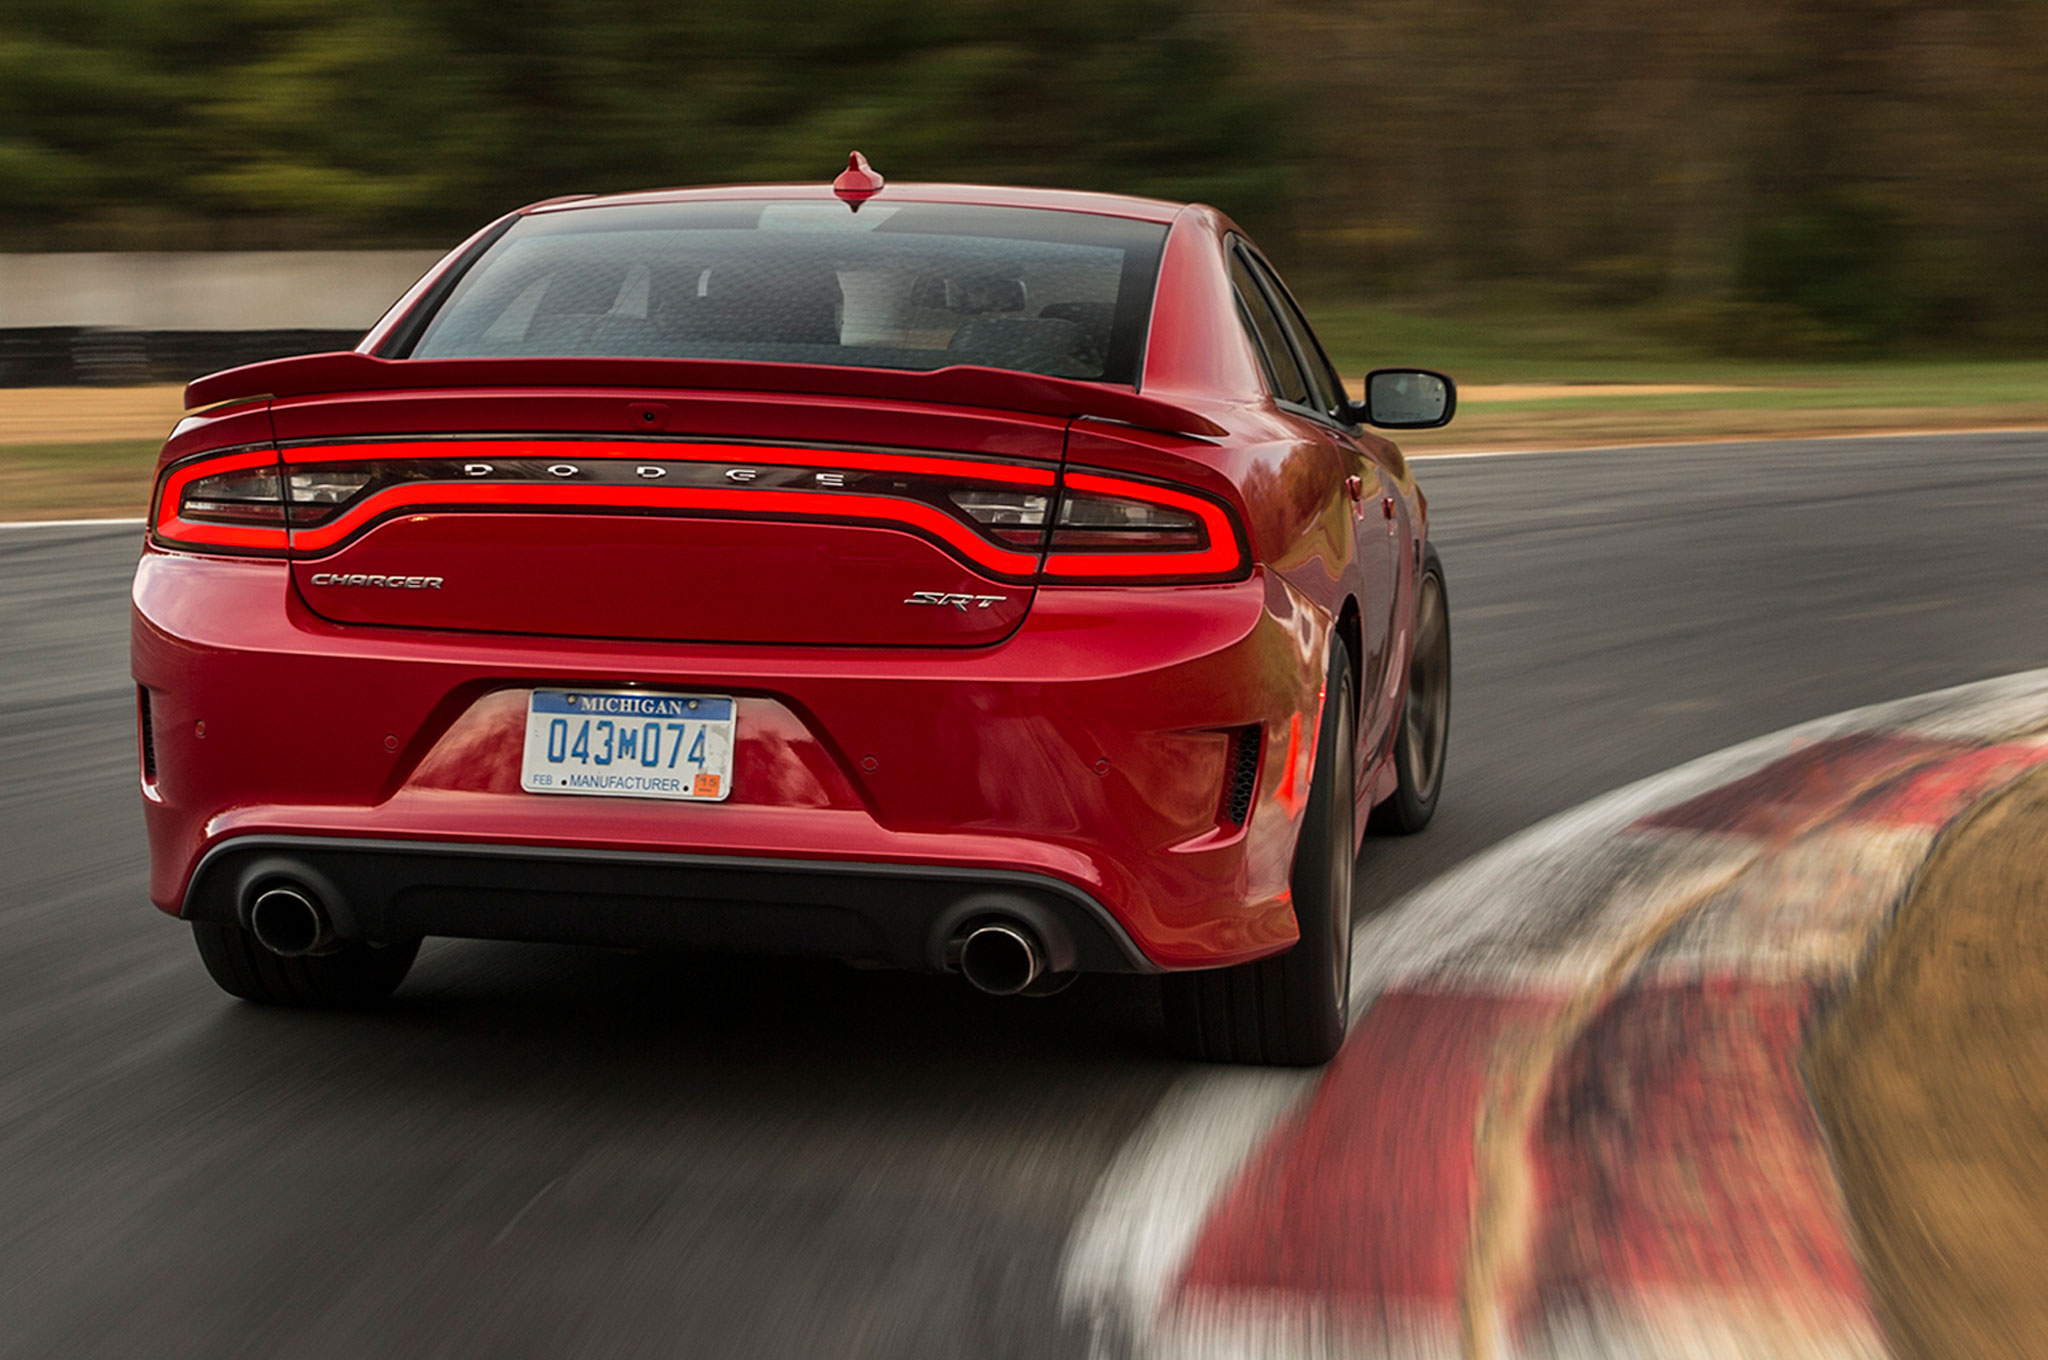 2015 Dodge Charger Srt Hellcat Review Cat Show More